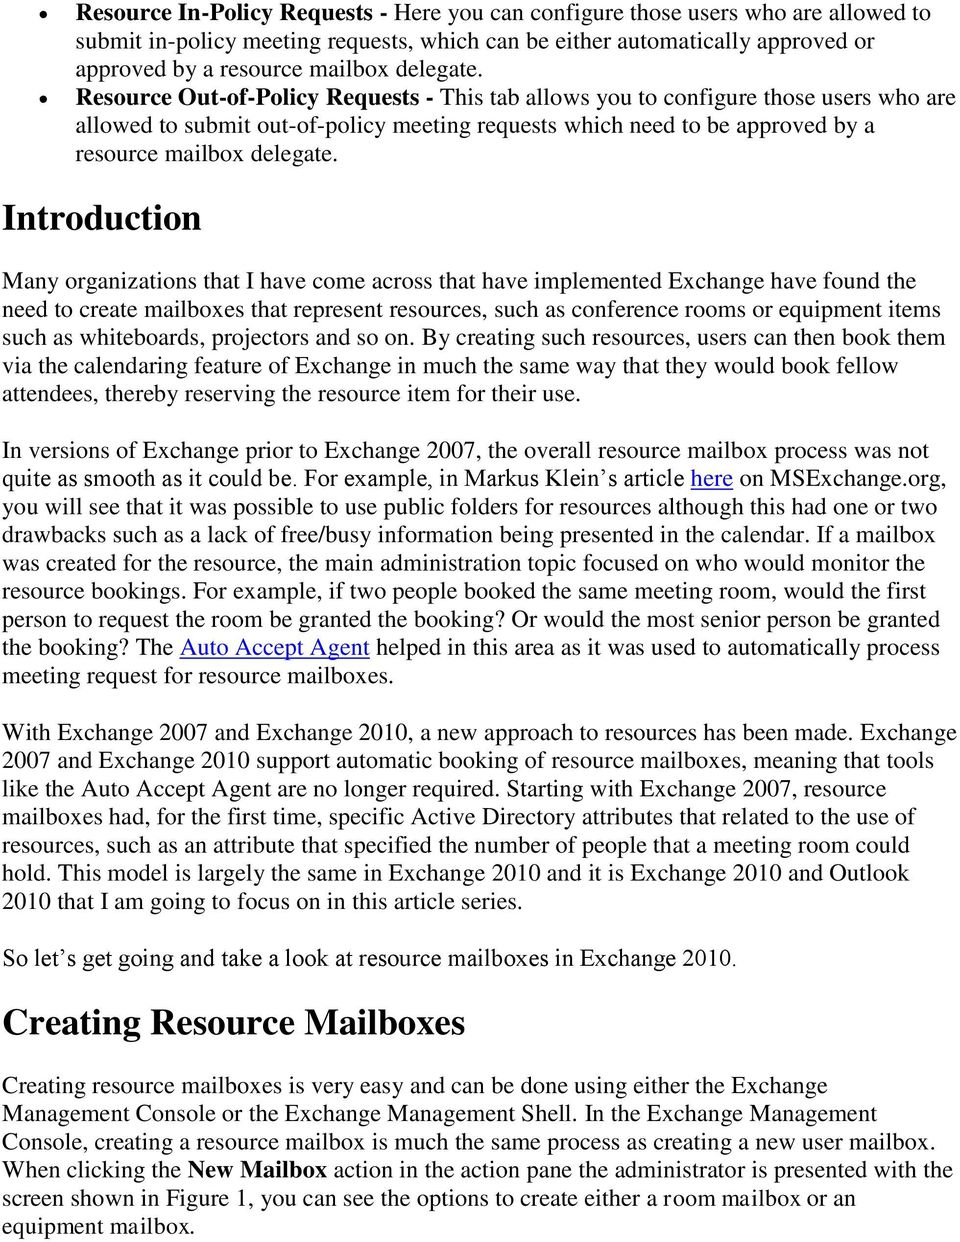 Resource Mailboxes in Exchange PDF